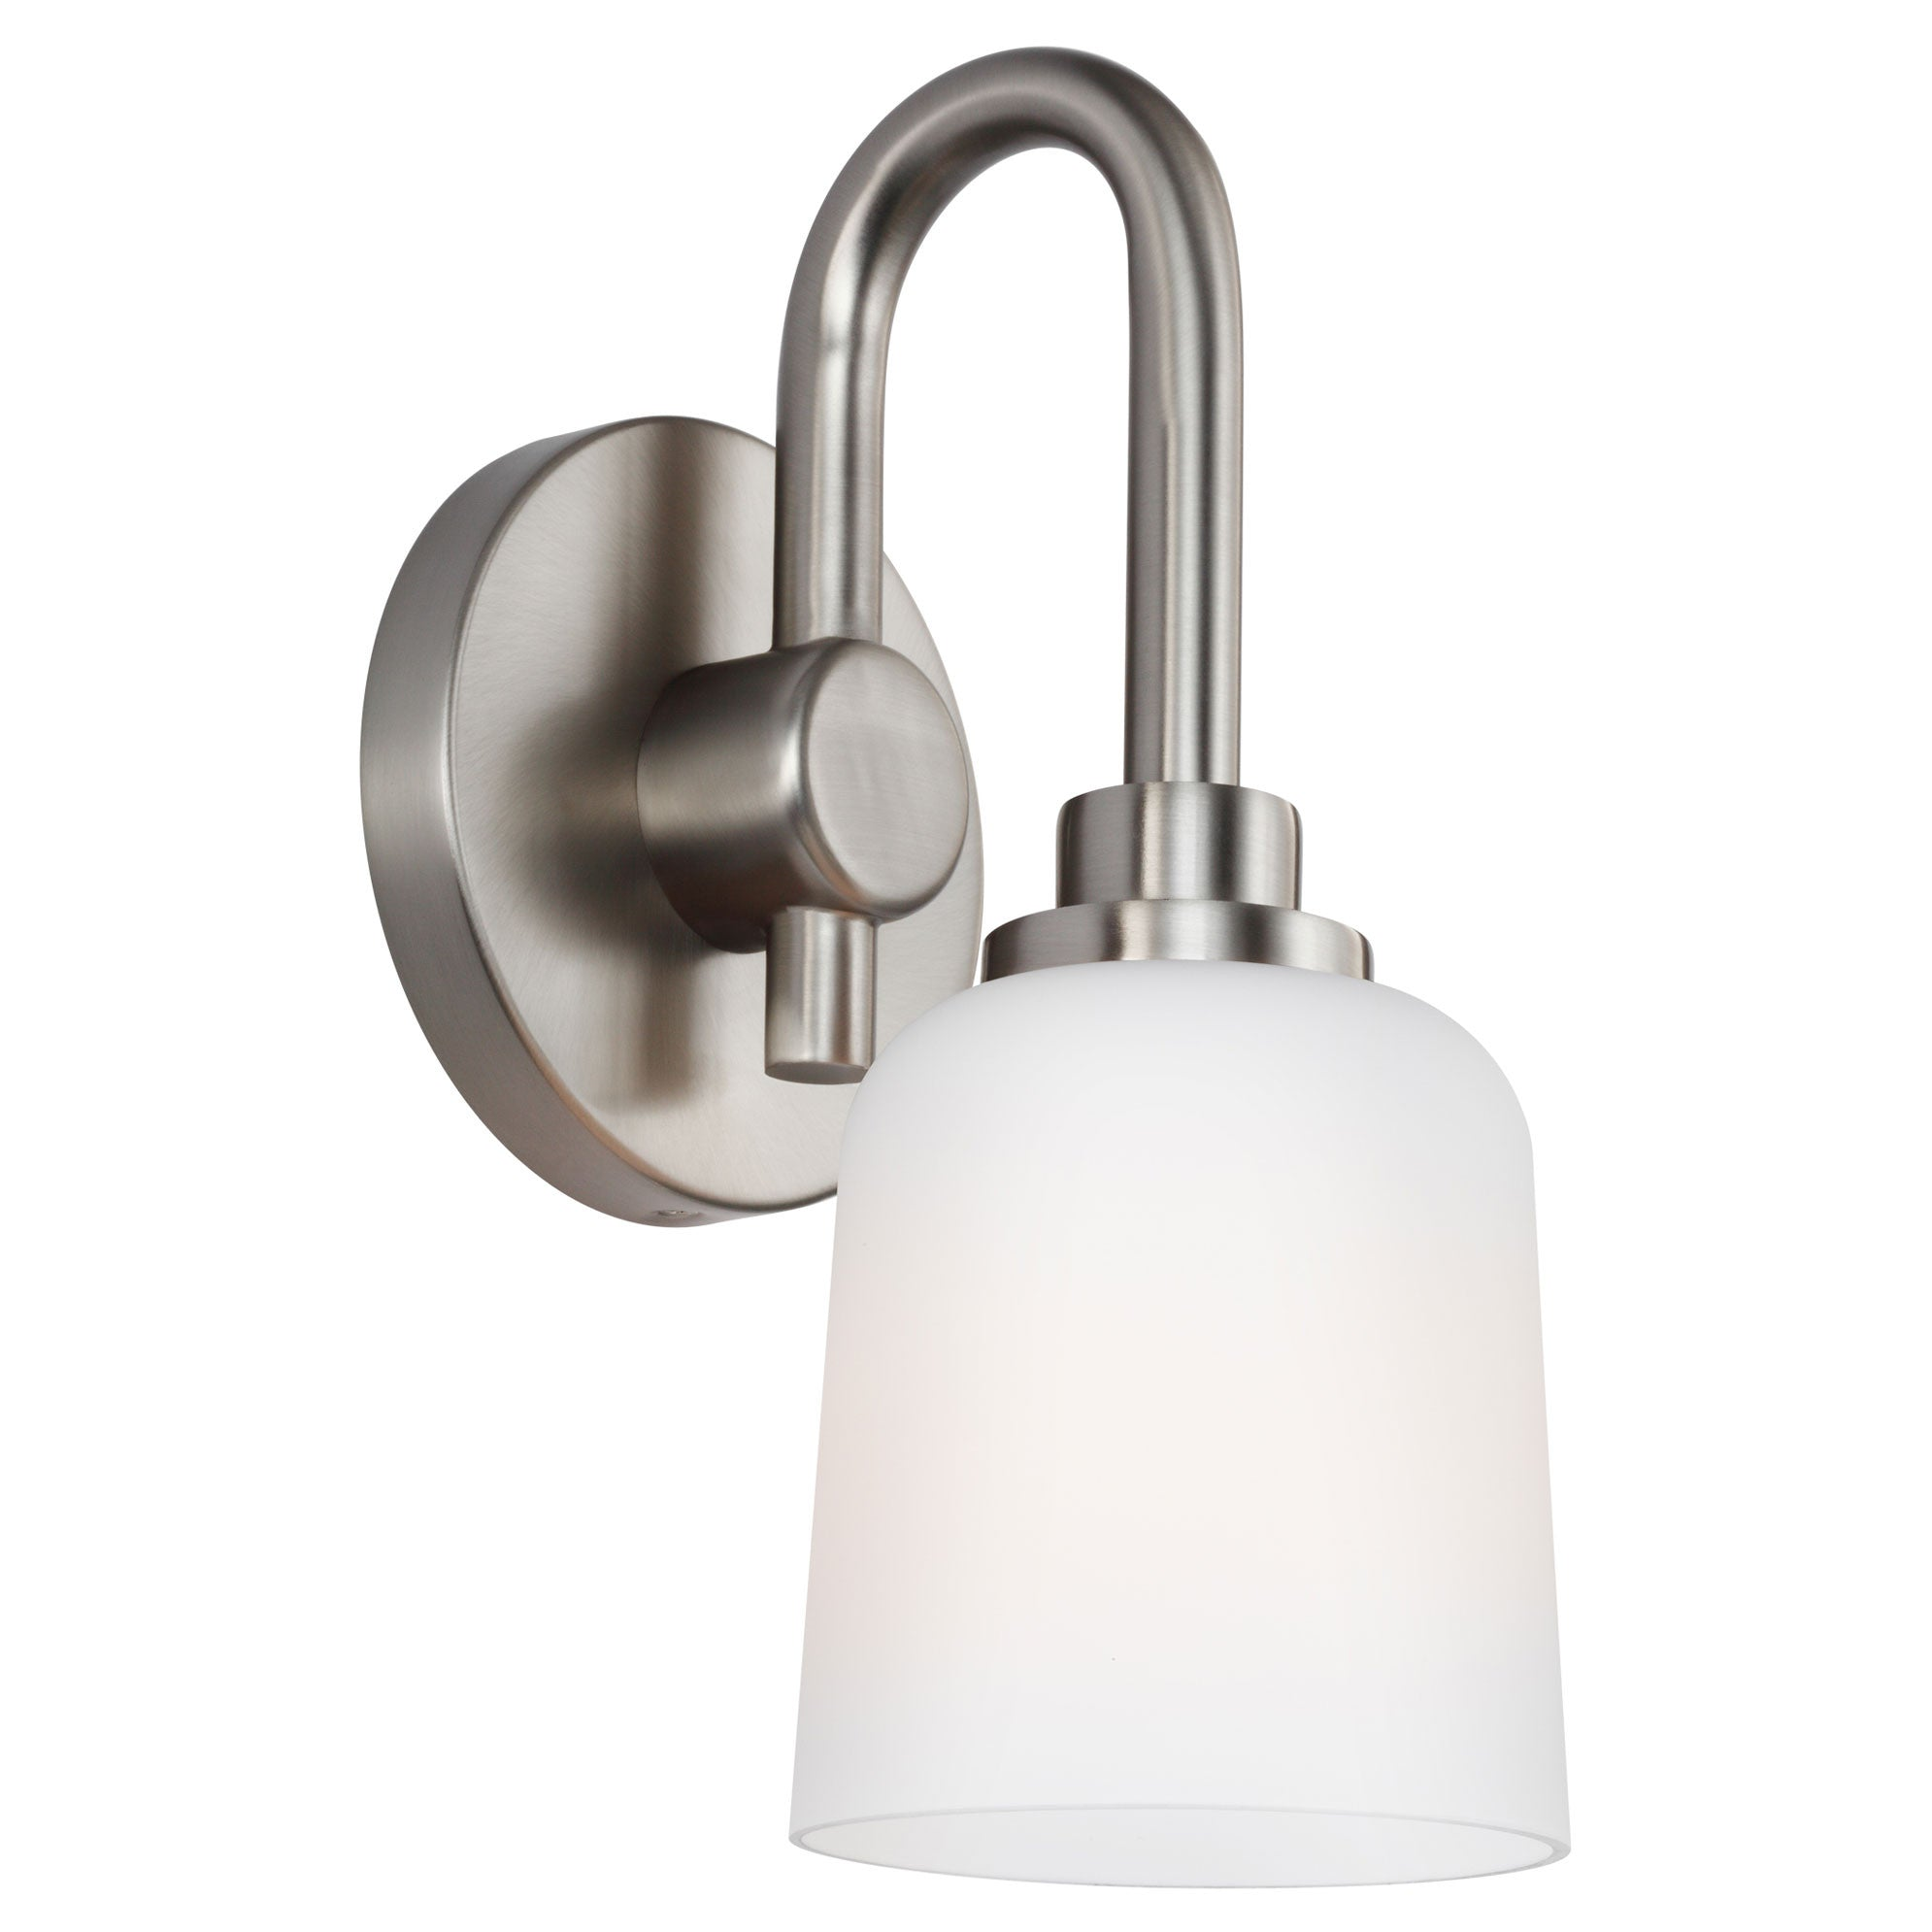 Feiss 1 Light Reiser Bath Light in Satin Nickel VS23901SN